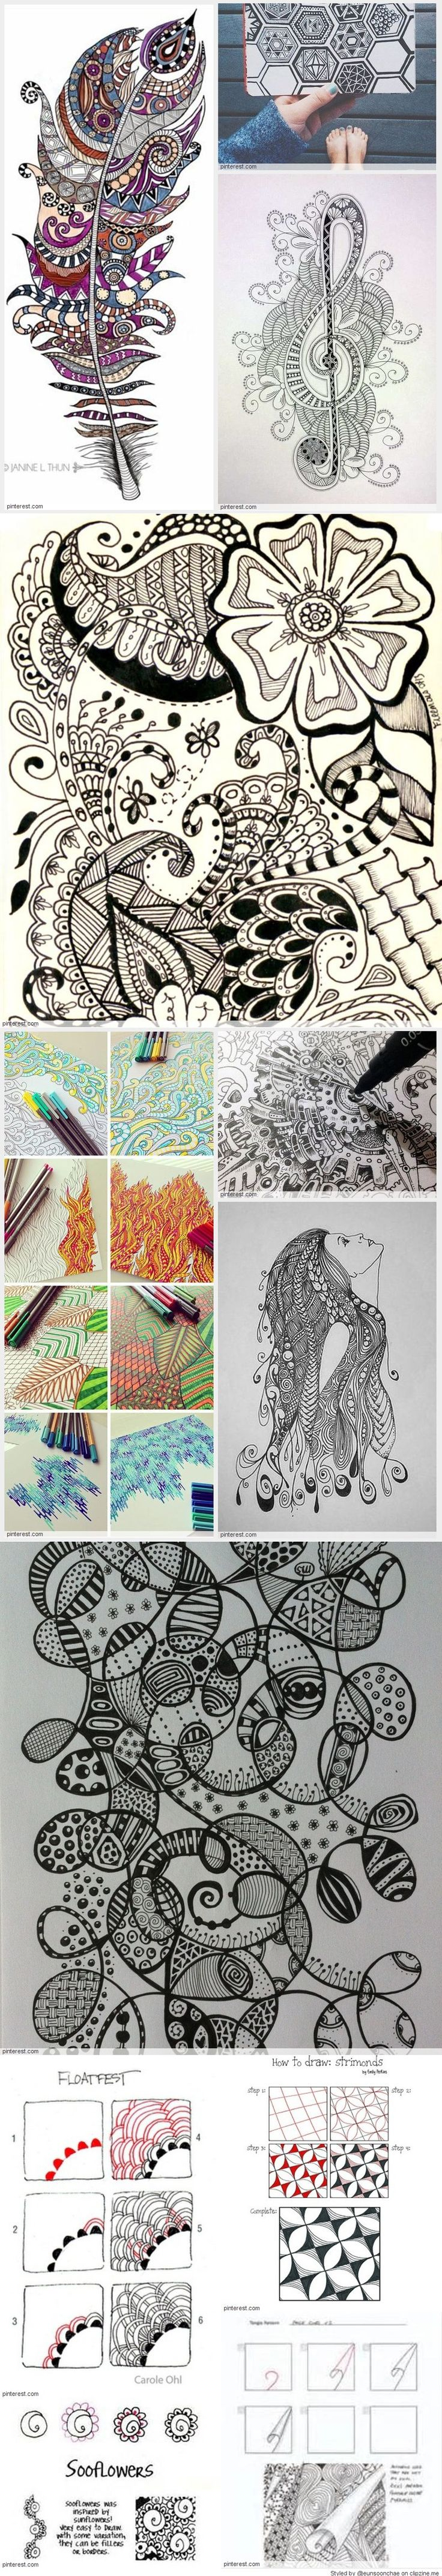 5884 best fun crafts images on pinterest arabesque doodles and